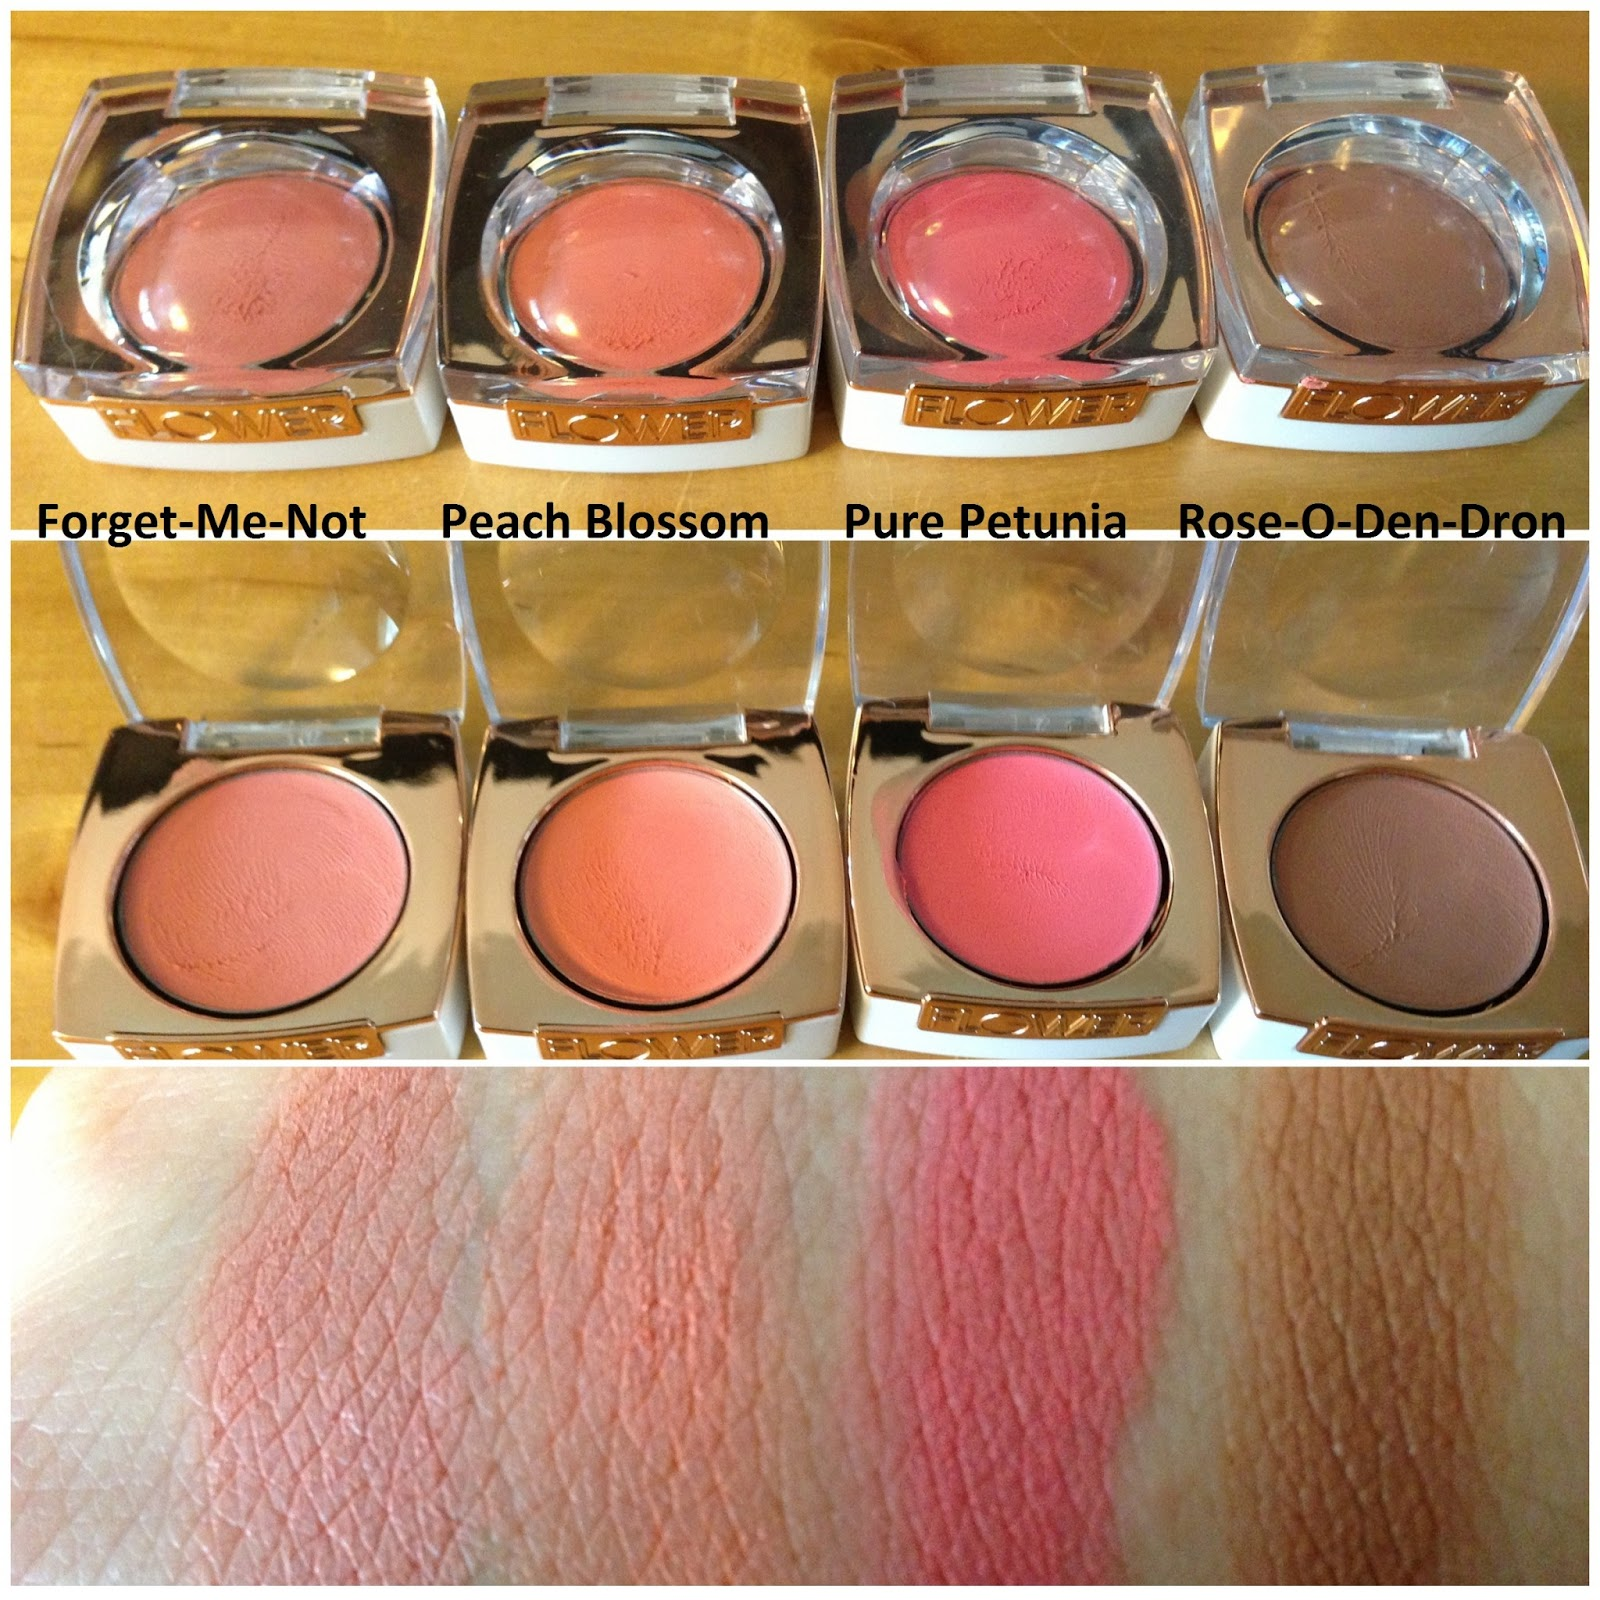 In the makeup mood flower cosmetics cheeks i picked up 4 creme blushes forget me not peach blossom pure petunia rose o den dron and one blush bronzer duo in gloriously golden izmirmasajfo